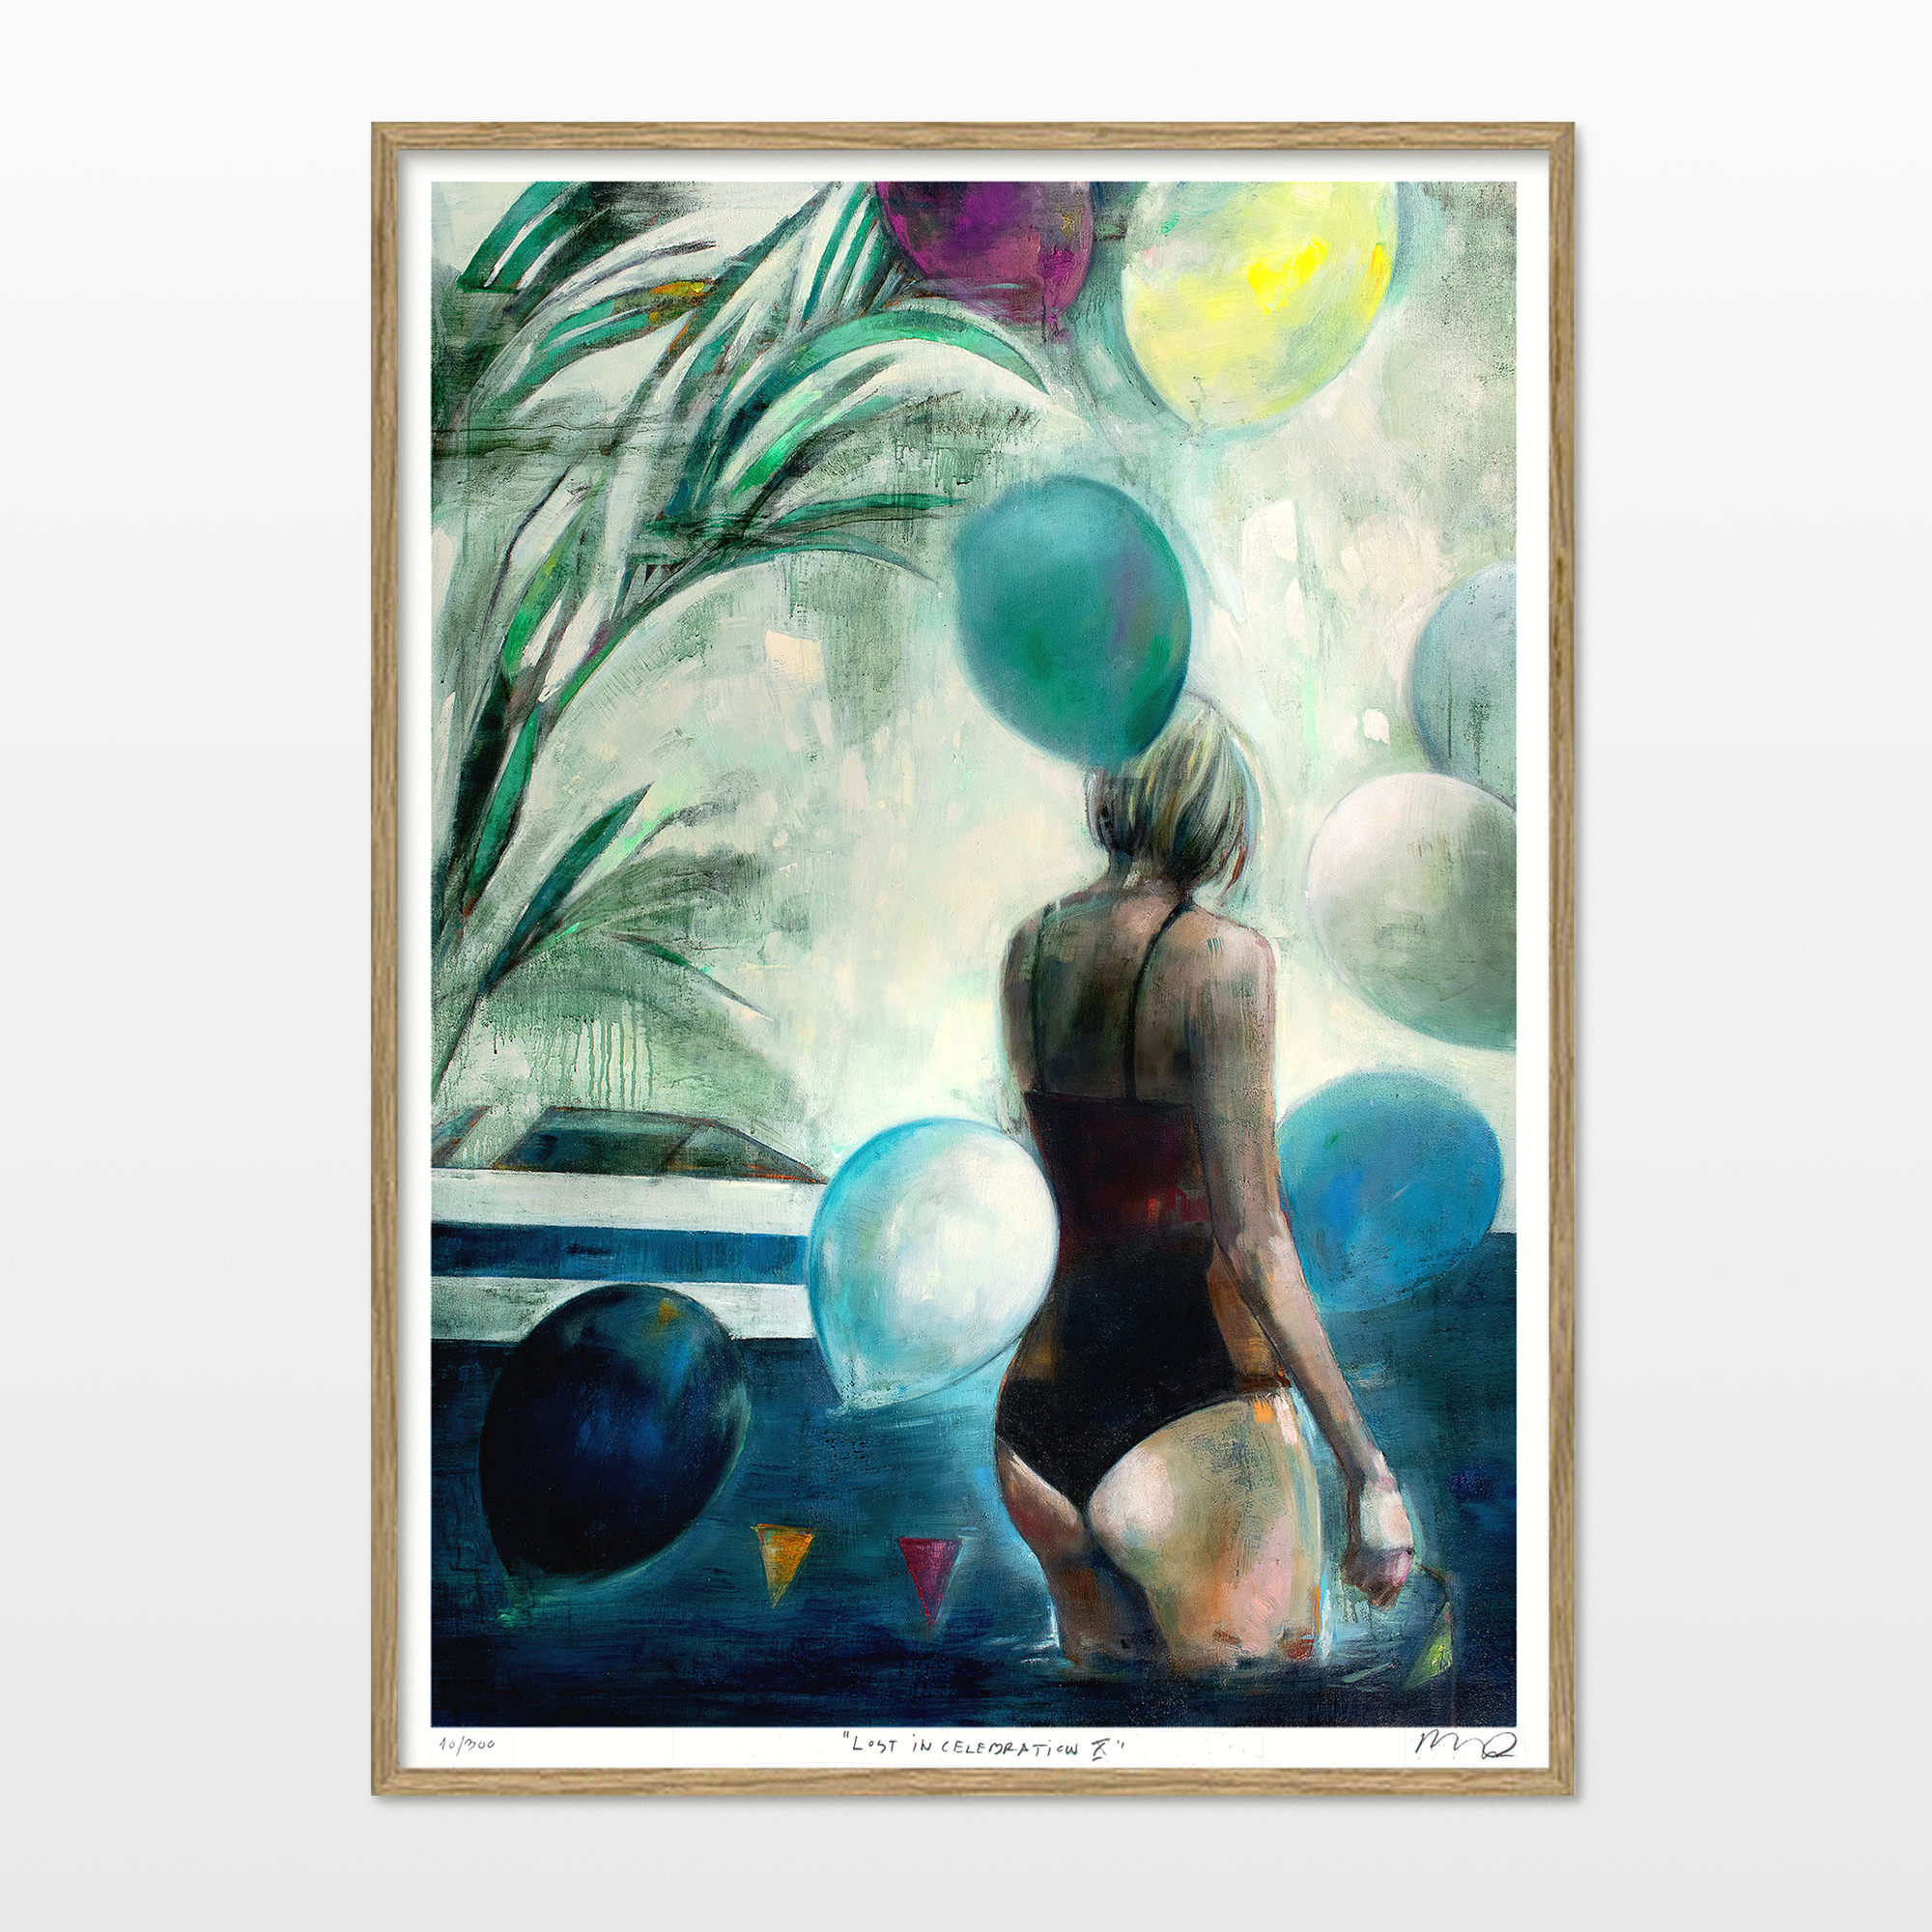 posters-prints, giclee-print, aesthetic, colorful, figurative, graphical, illustrative, landscape, bodies, botany, nature, oceans, people, blue, green, turquoise, yellow, ink, paper, beach, beautiful, danish, decorative, design, female, flowers, interior, interior-design, nordic, posters, pretty, scandinavien, women, Buy original high quality art. Paintings, drawings, limited edition prints & posters by talented artists.